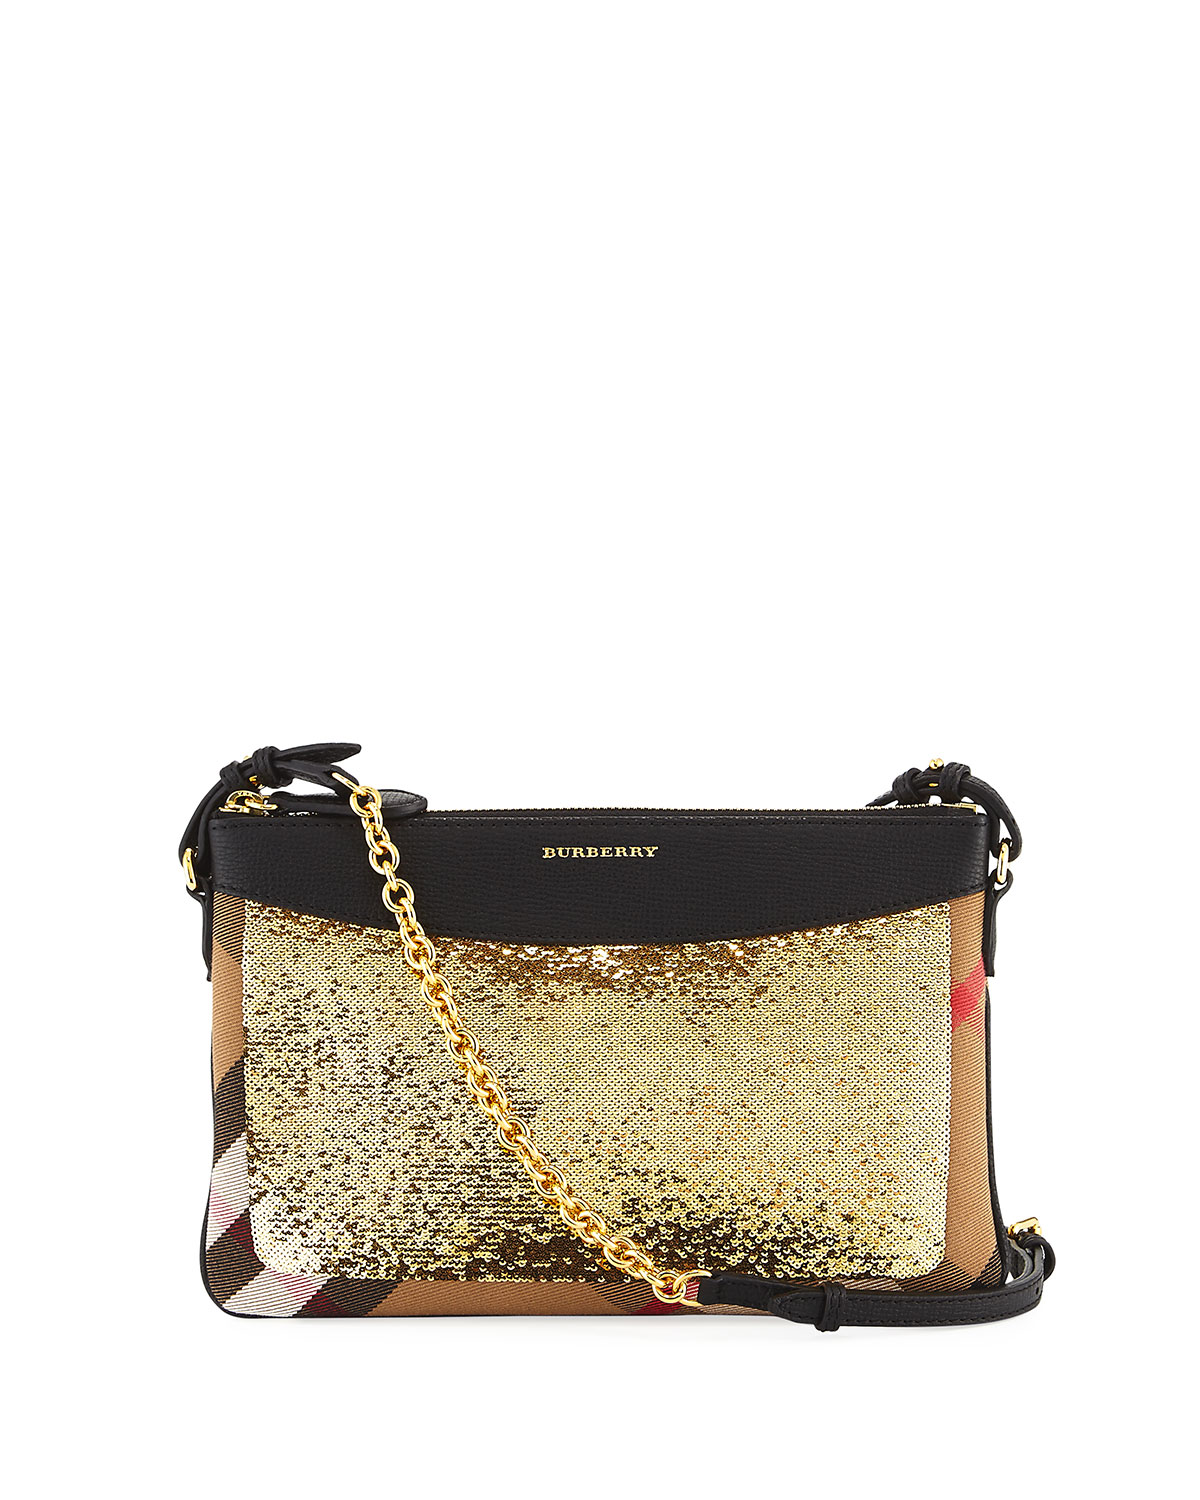 Burberry Peyton Sequined Horseferry Check Pouch Bag   Neiman Marcus 5f64d19c02